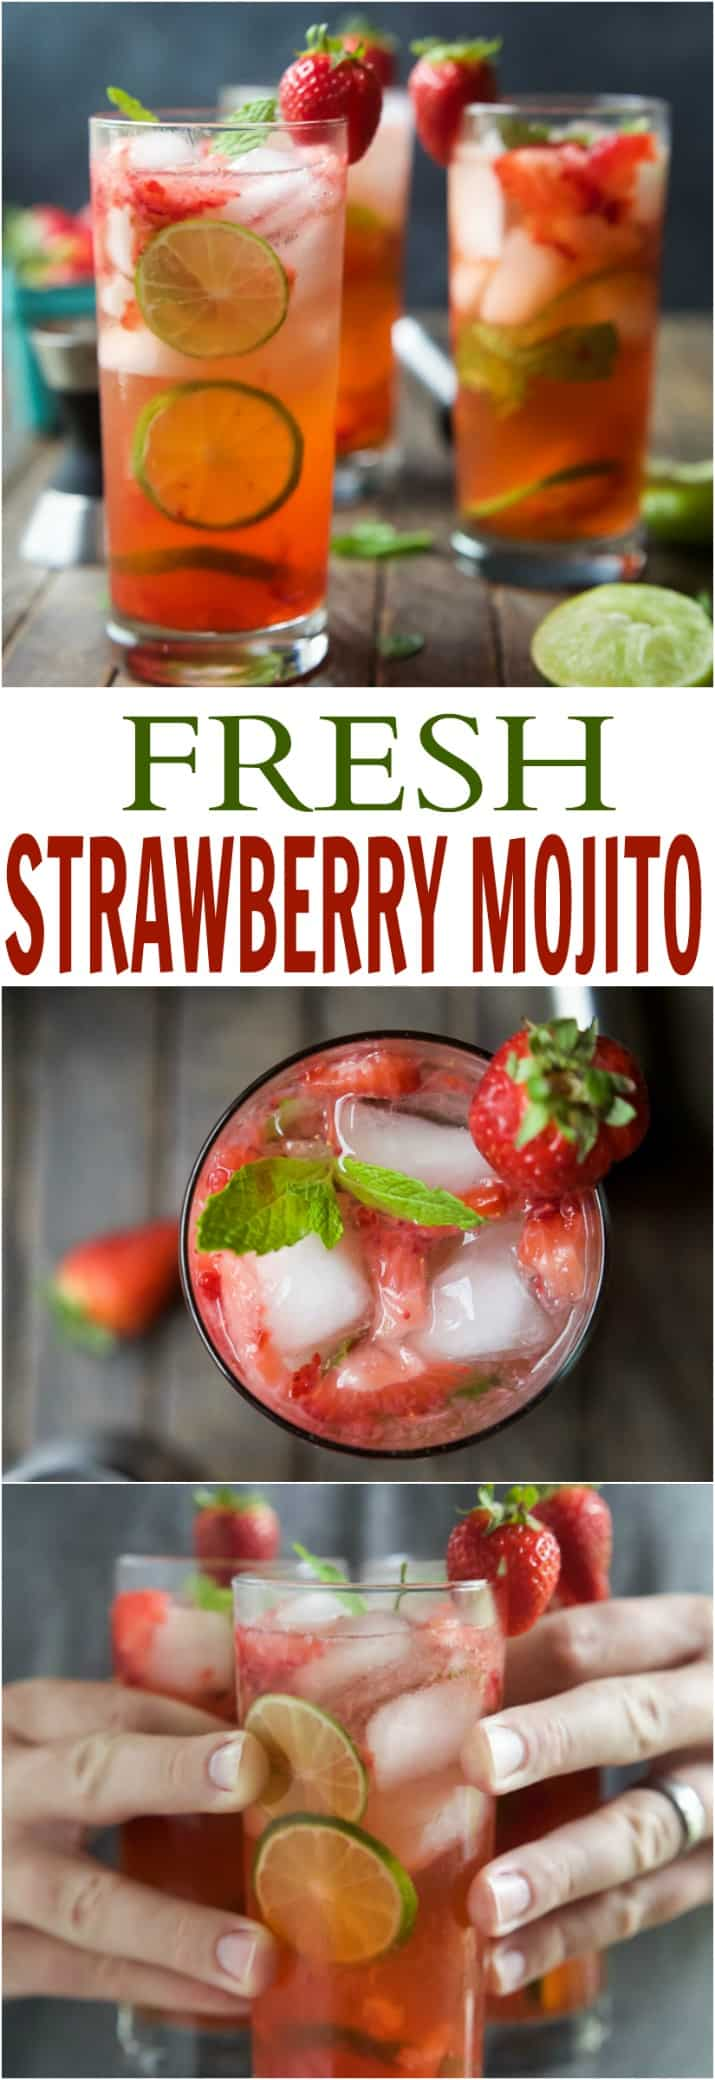 The perfect Strawberry Mojito Recipe - easy, fresh, minty, fizzy, limey and filled with sweet juicy strawberries for the most refreshing cocktail this summer! It is sure to quench your thirst! | joyfulhealthyeats.com